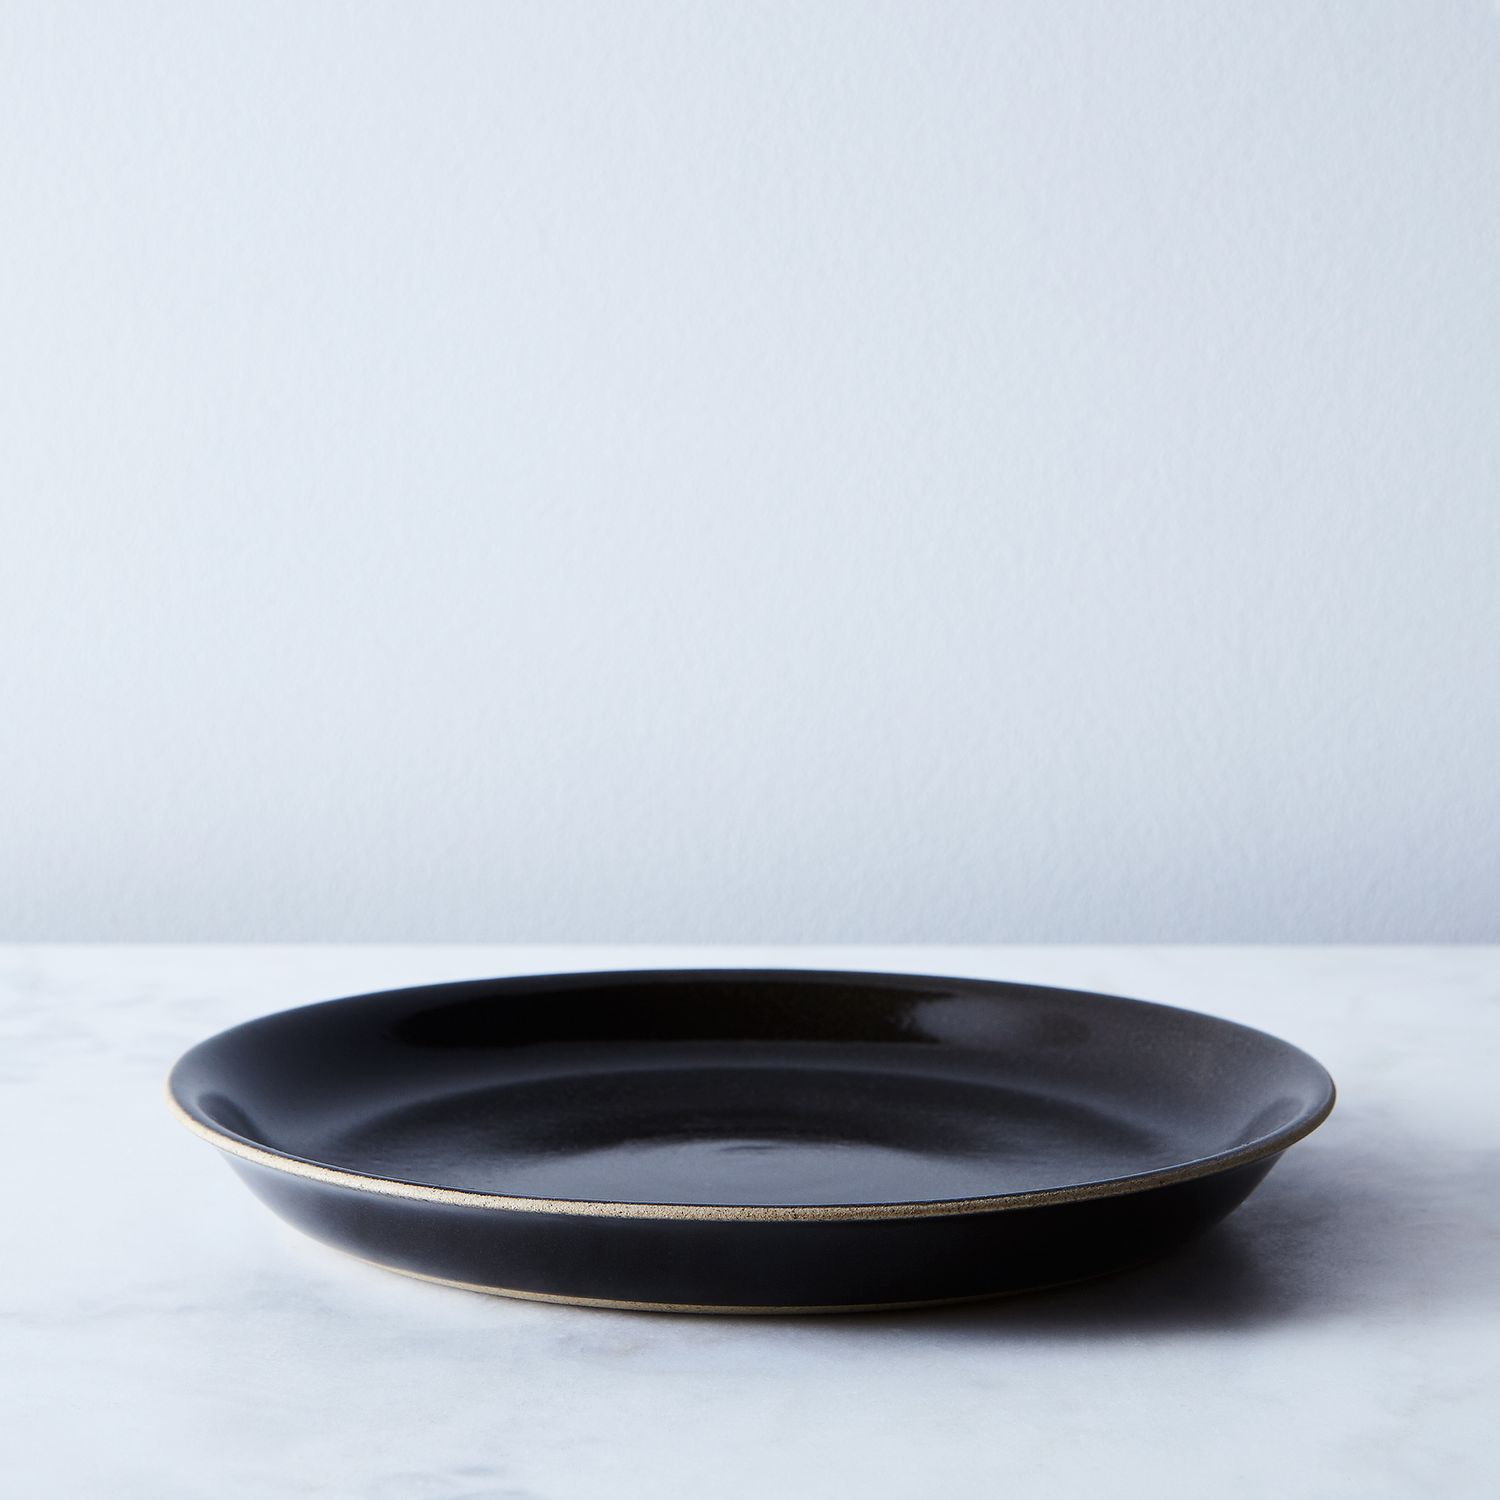 how to set up a kitchen pantry burgundy curtains black japanese ceramic dinnerware (set of 4) on food52